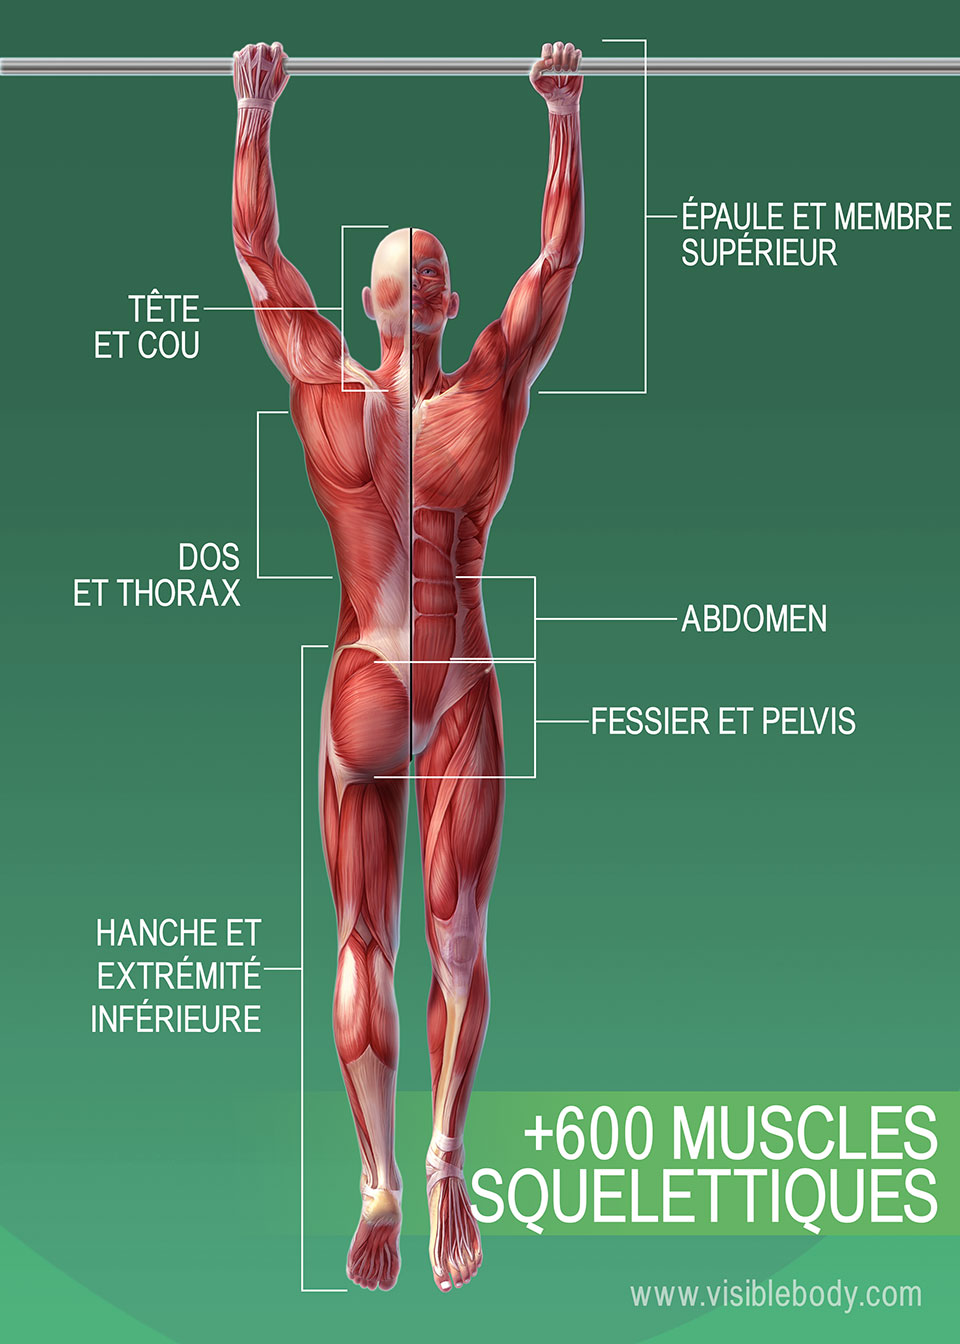 3B-+600-Muscles-squelettiques